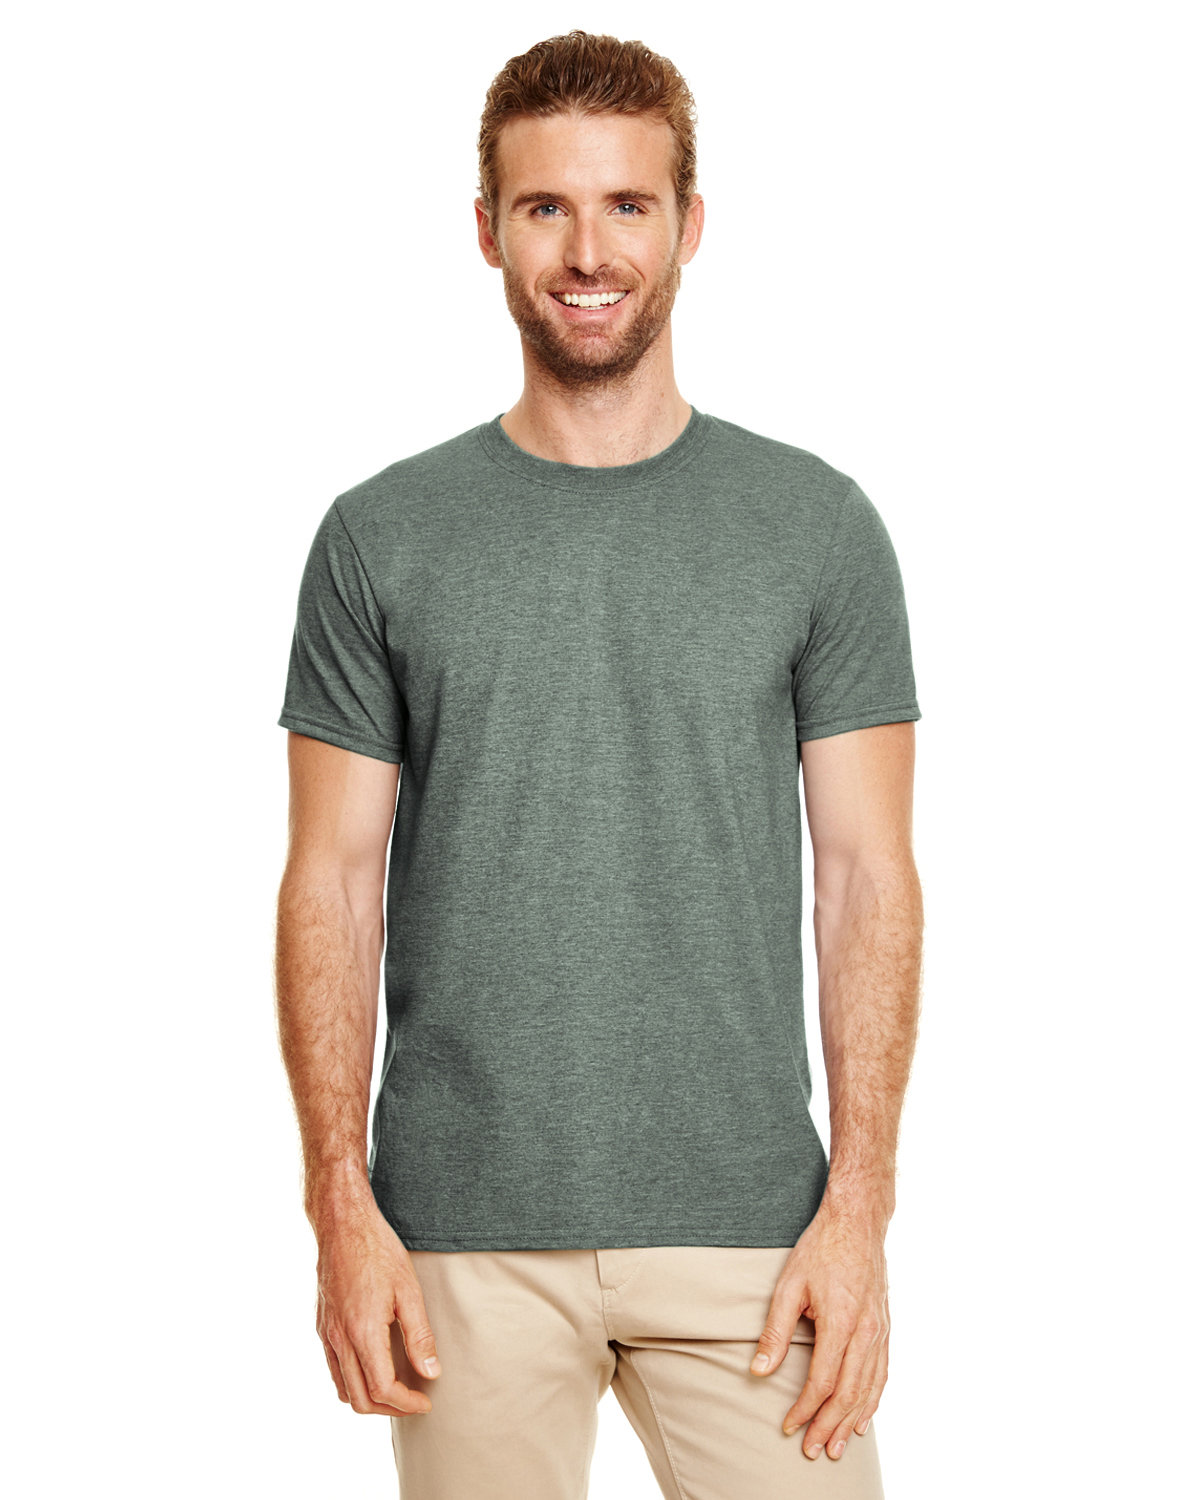 Gildan Adult Softstyle® T-Shirt HTH FOREST GREEN